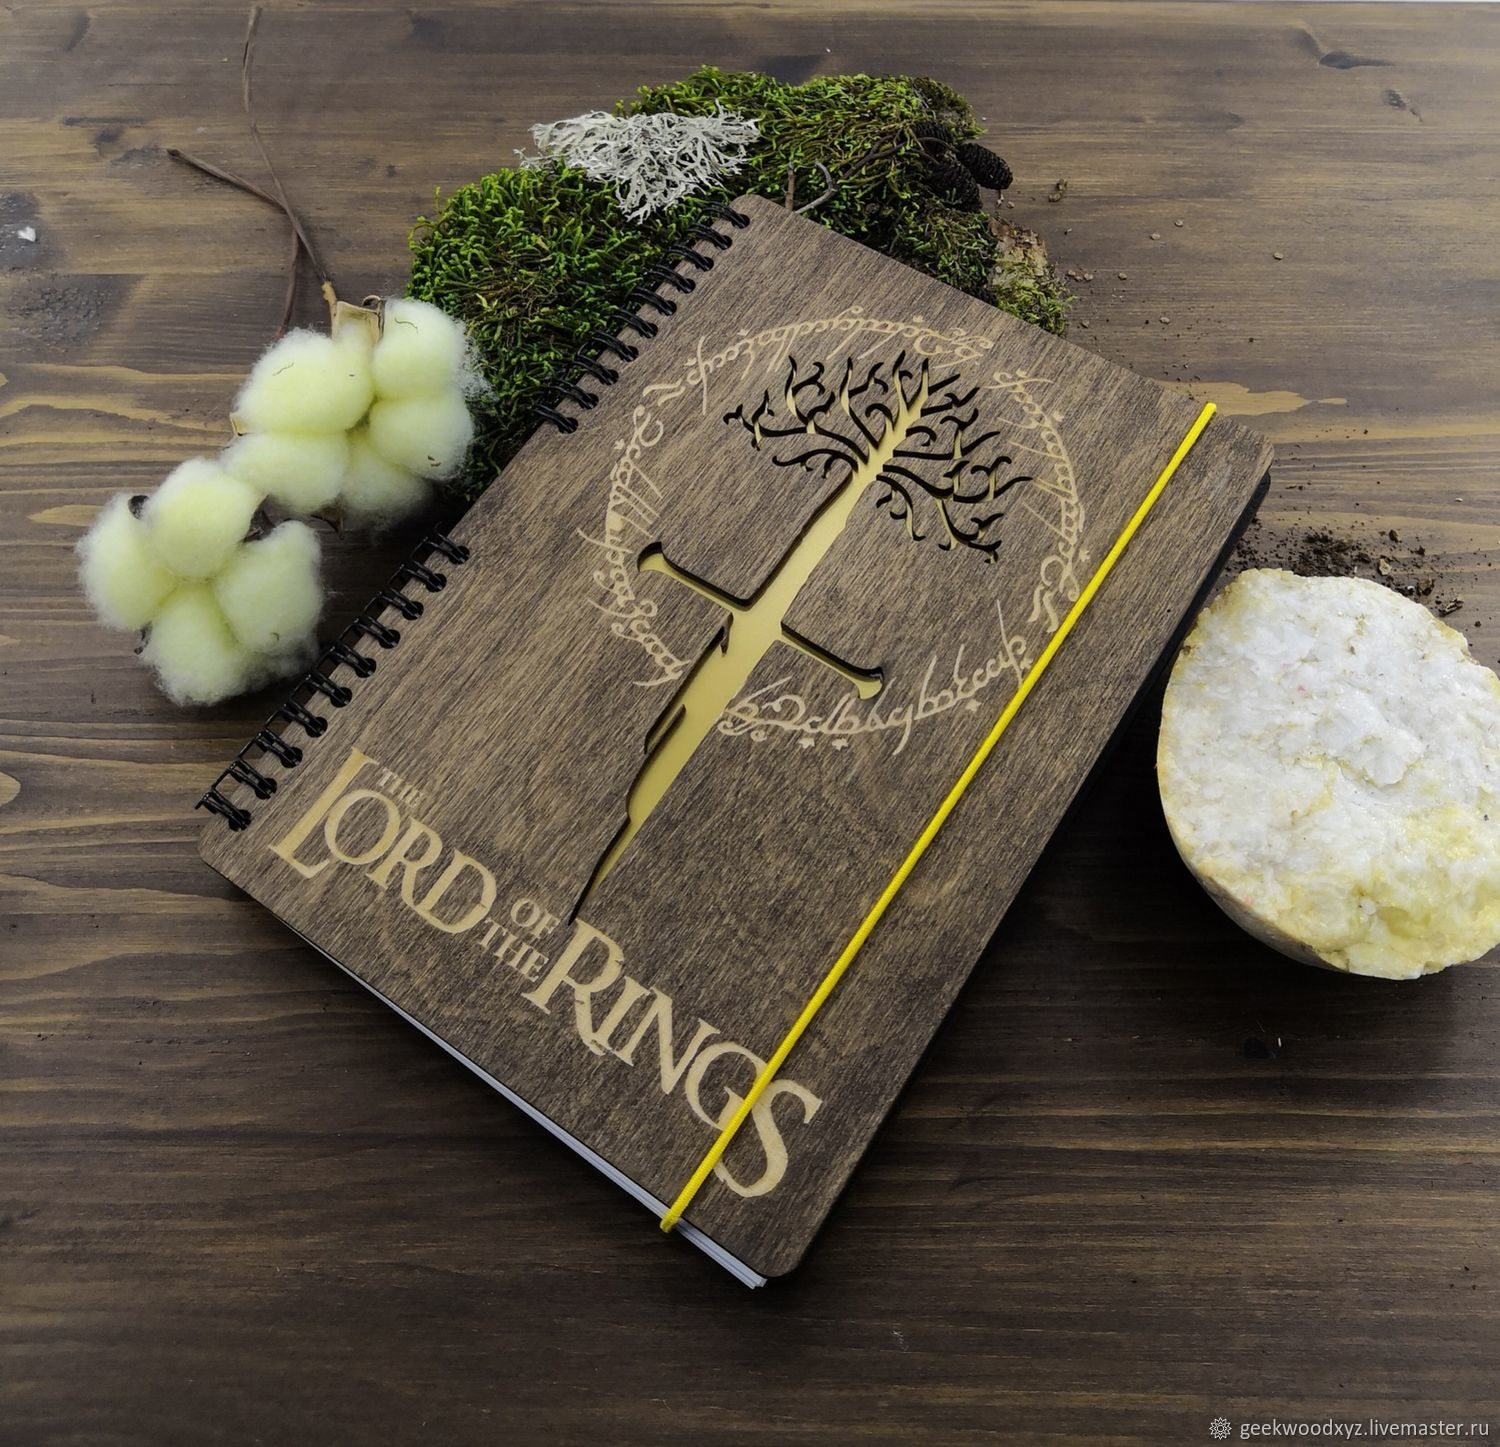 The Lord of the rings Lord of the rings Wood Notepad / Sketchbook, Notebooks, Krasnodar,  Фото №1